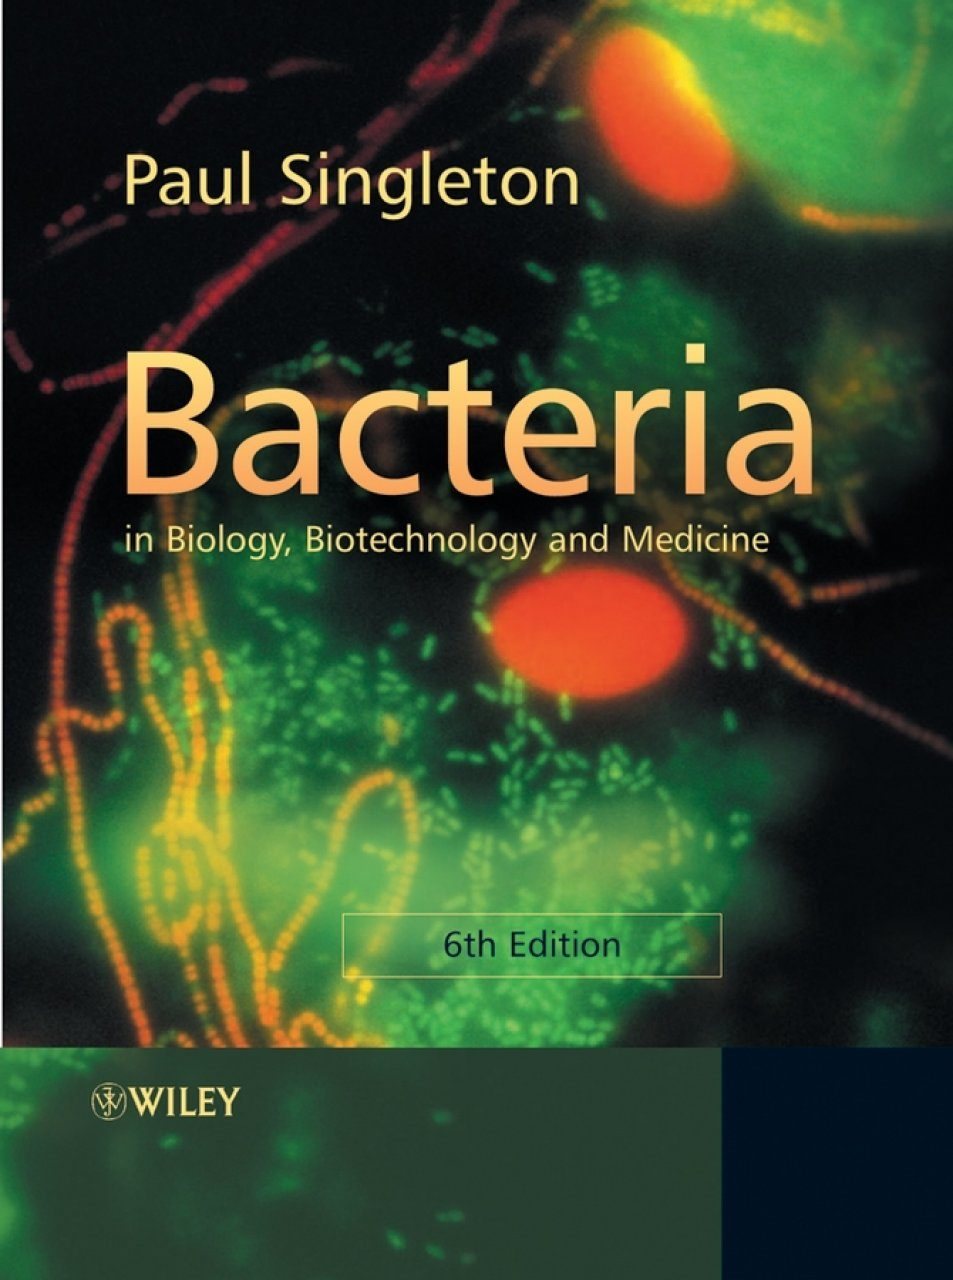 Bacteria in Biology, Biotechnology and Medicine